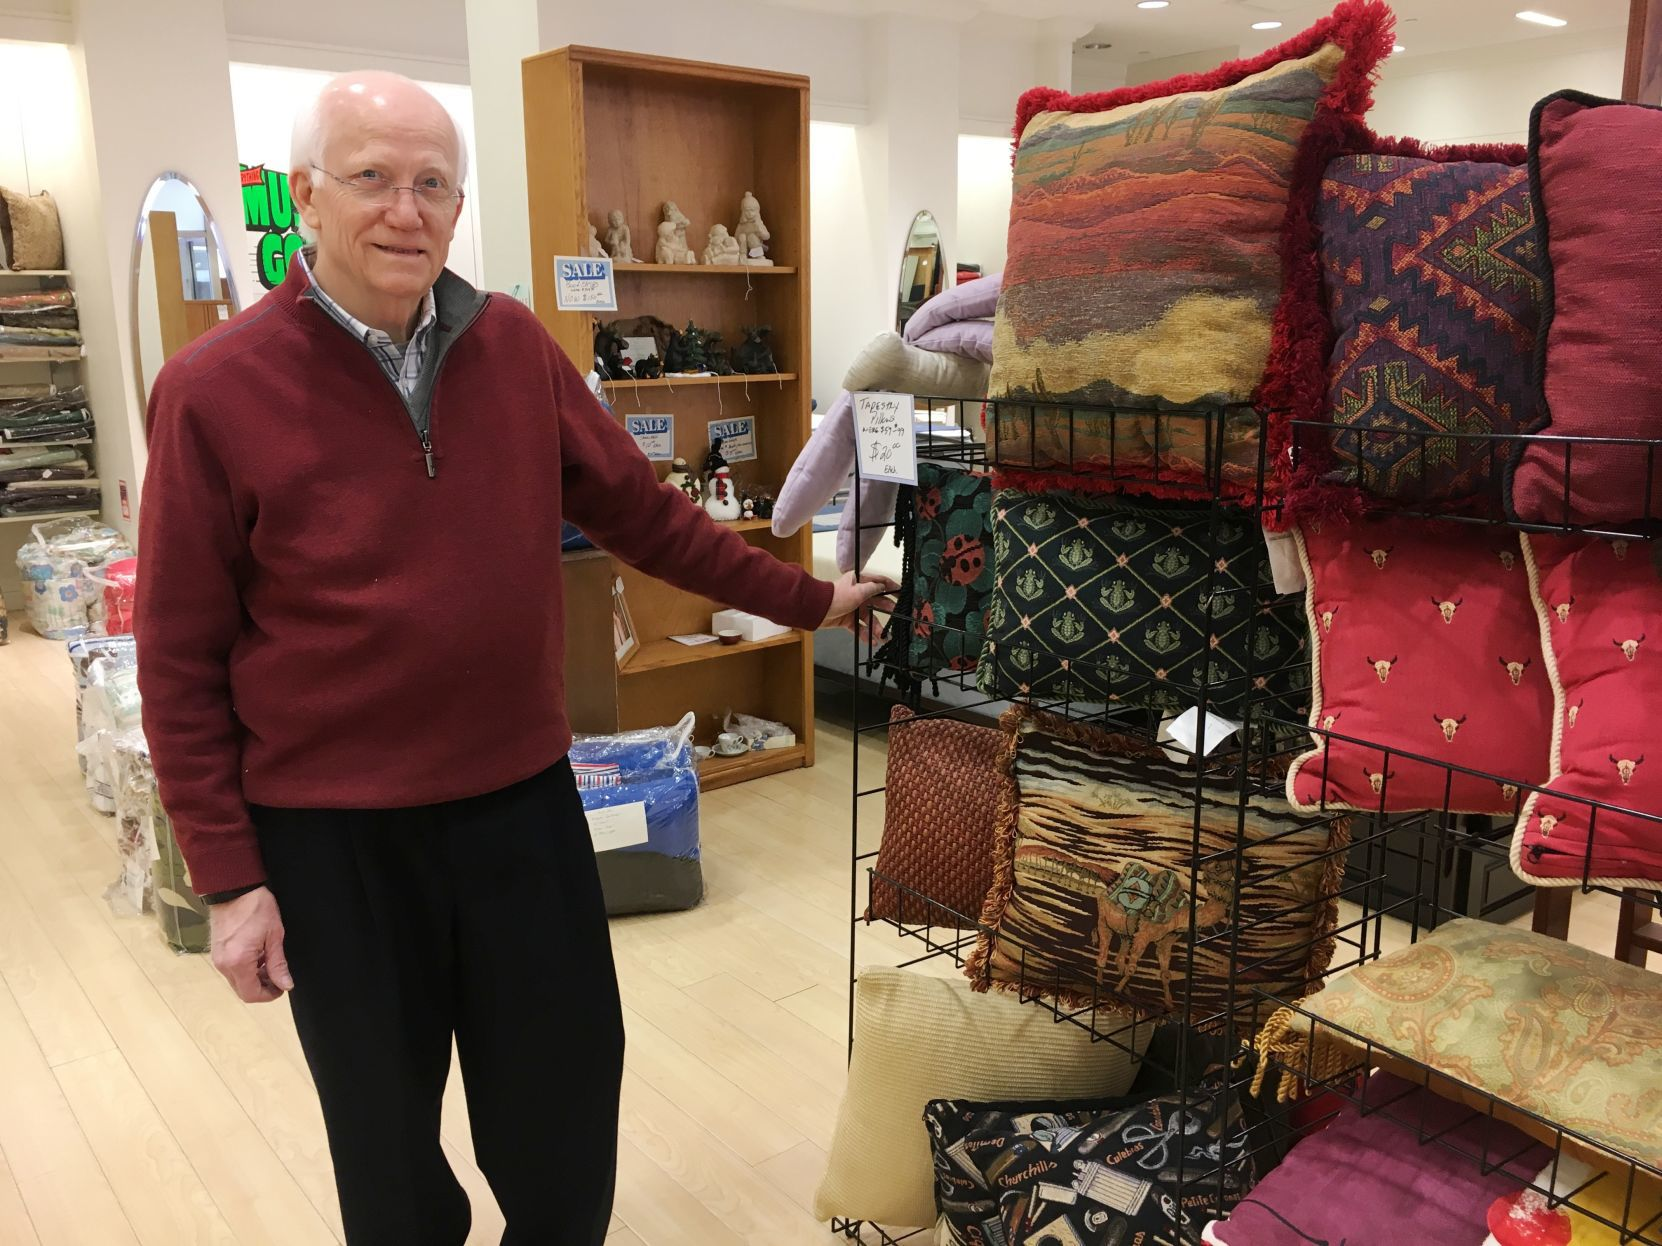 Environs Urban Home Owner Gerald King Is Closing His Home Furnish Ings  Store In The Stony Point Fashion Park And Retiring.